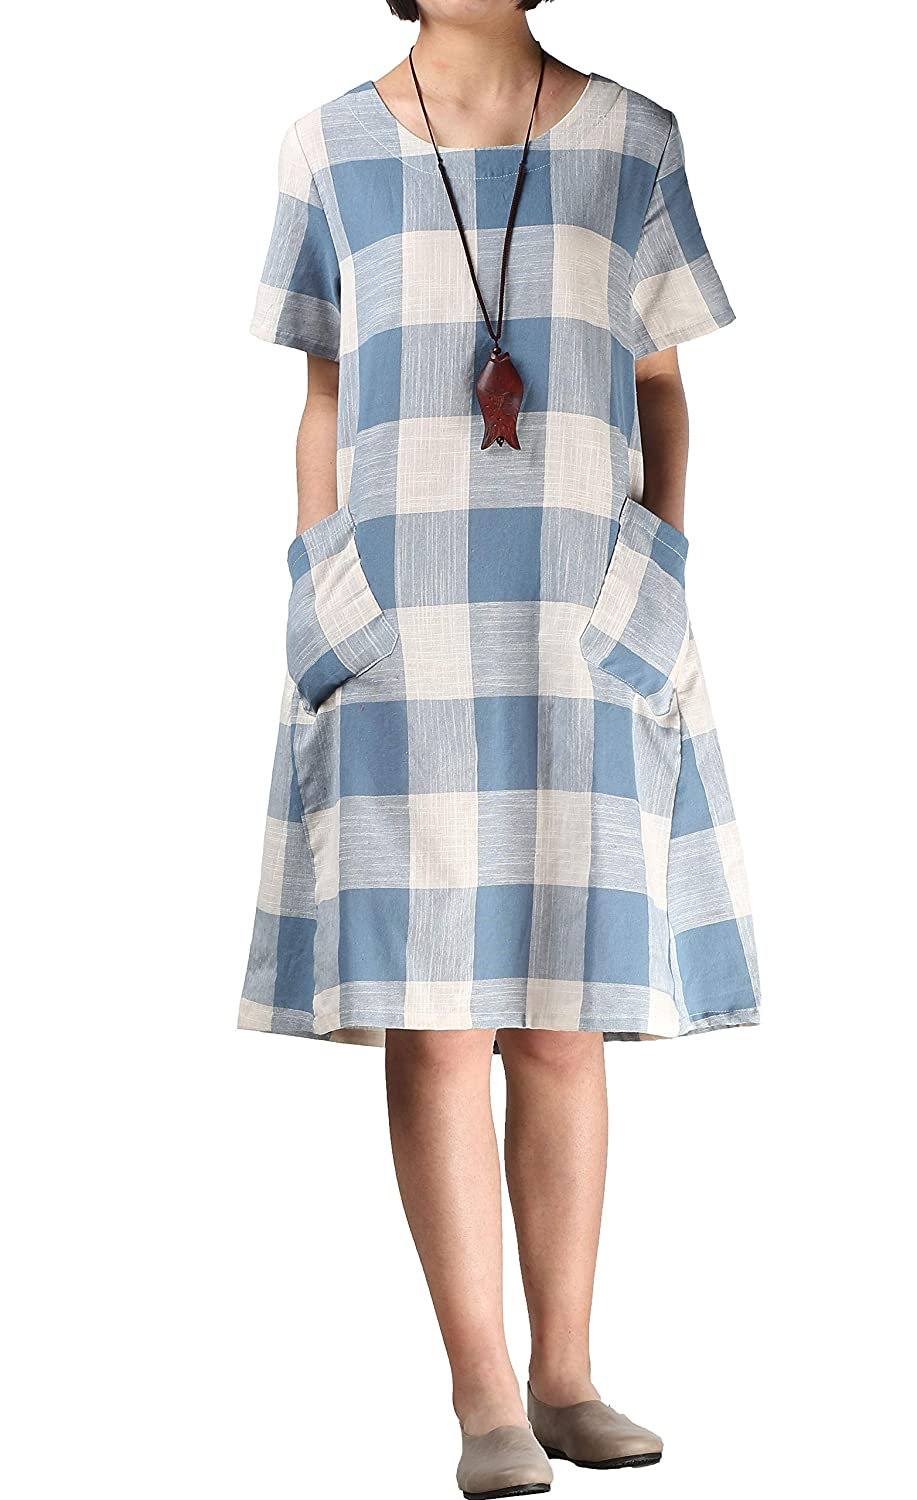 1920s Downton Abbey Dresses Mordenmiss Womens Cotton Linen Dress Large Checked Plaid Shirt Dress with Pockets $35.00 AT vintagedancer.com